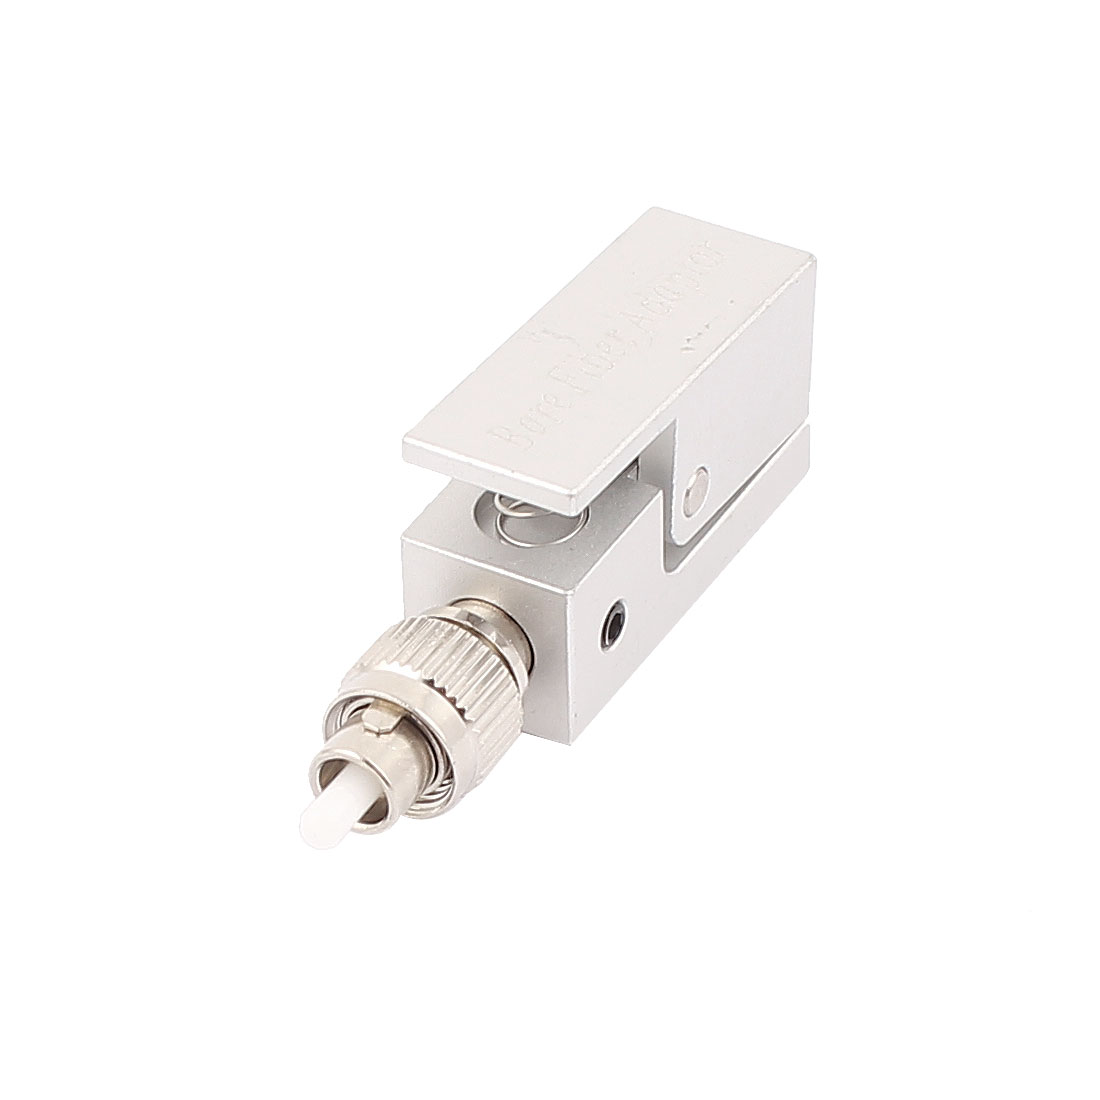 FTTH Fibre Optical Connector Square FC Bare Fiber Optic Adapter